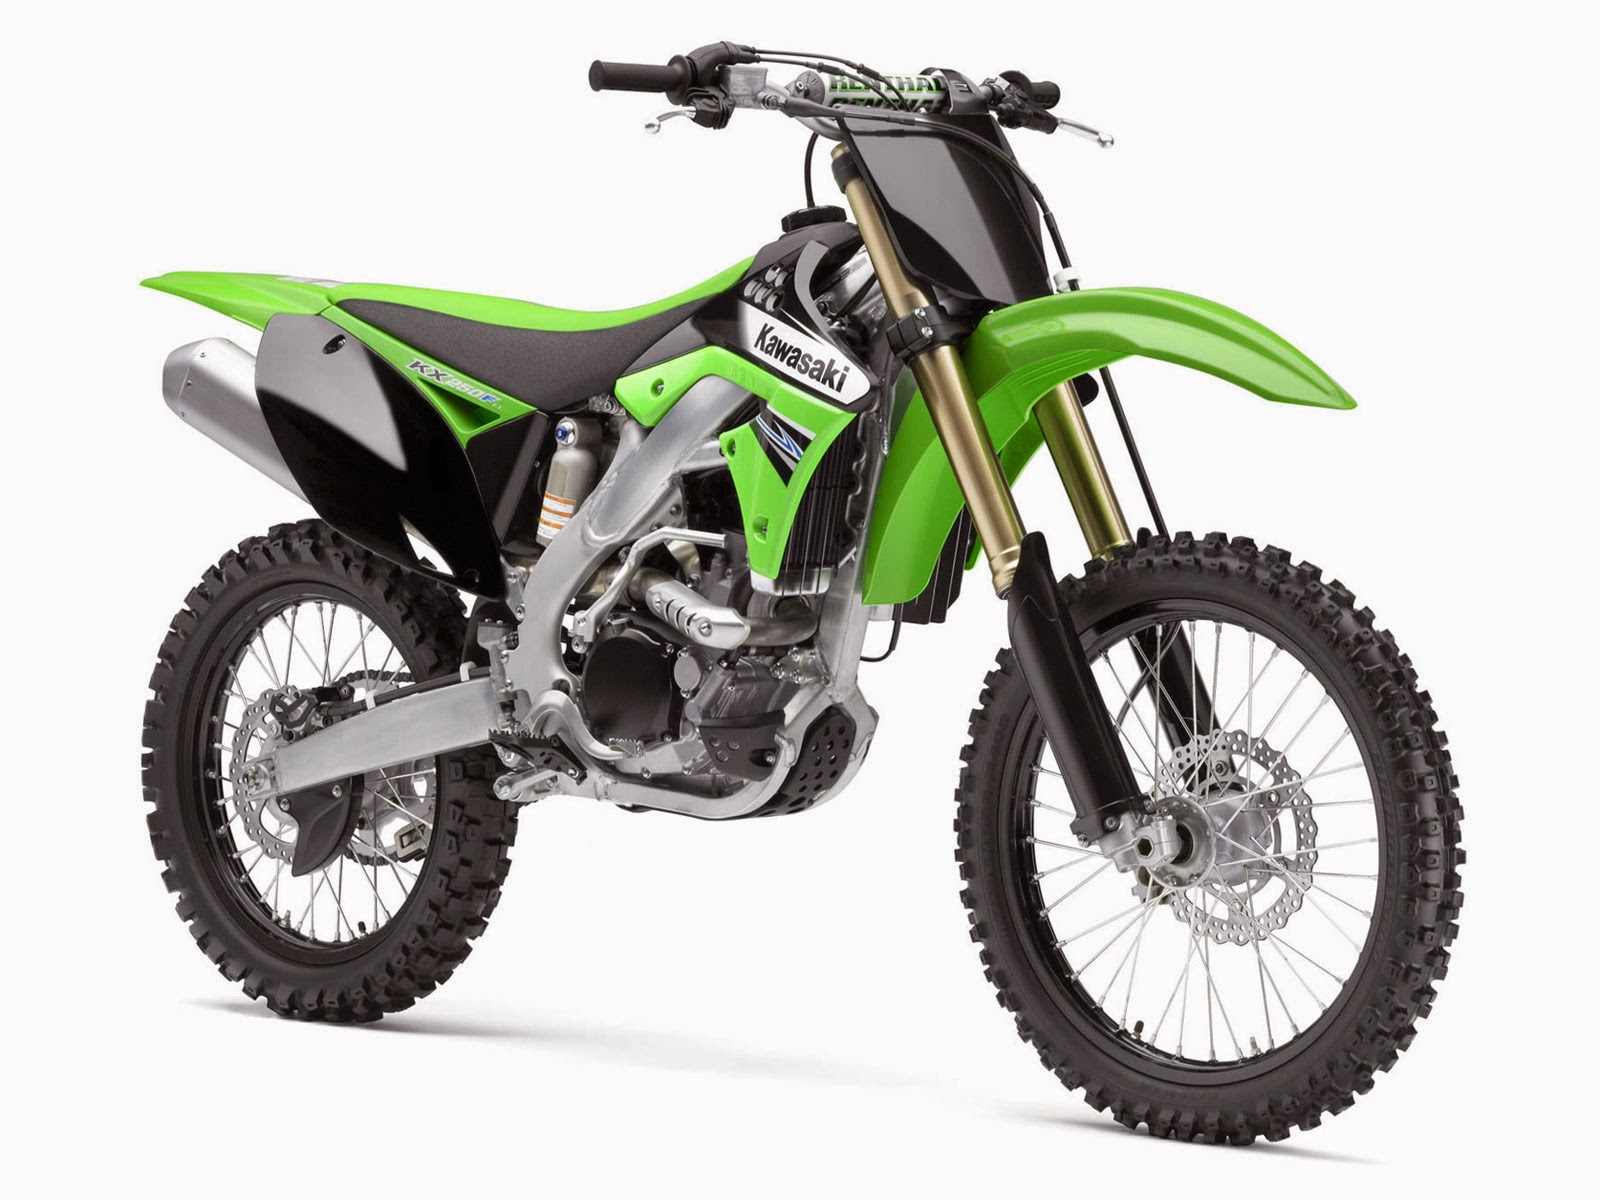 65 Modifikasi Motor Klx D Tracker Trail Supermoto Terbaru